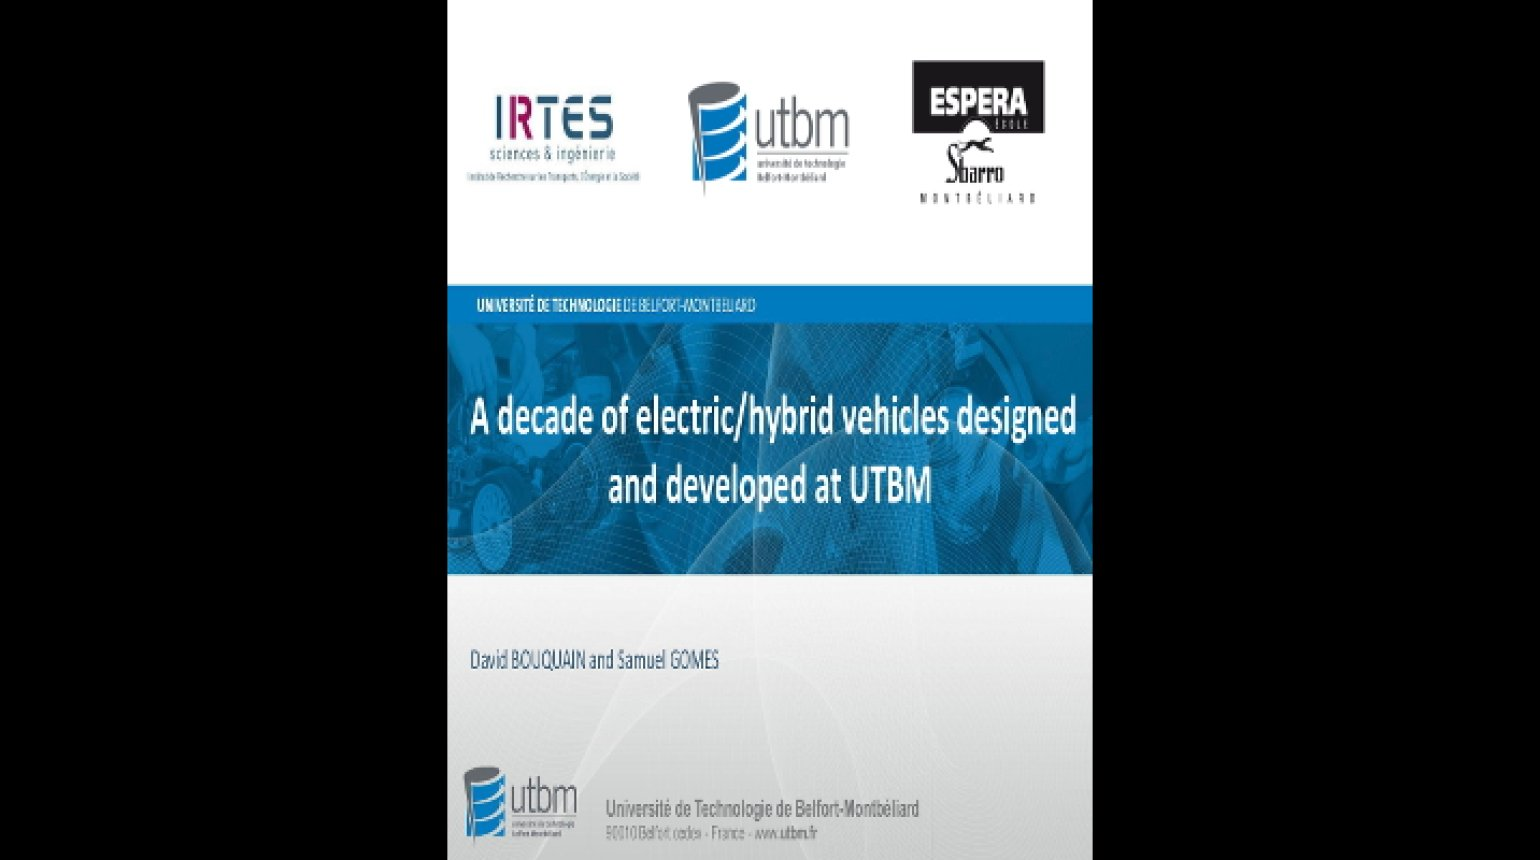 Video - A Decade of Electric/Hybrid Vehicles Design and Development at UTBM